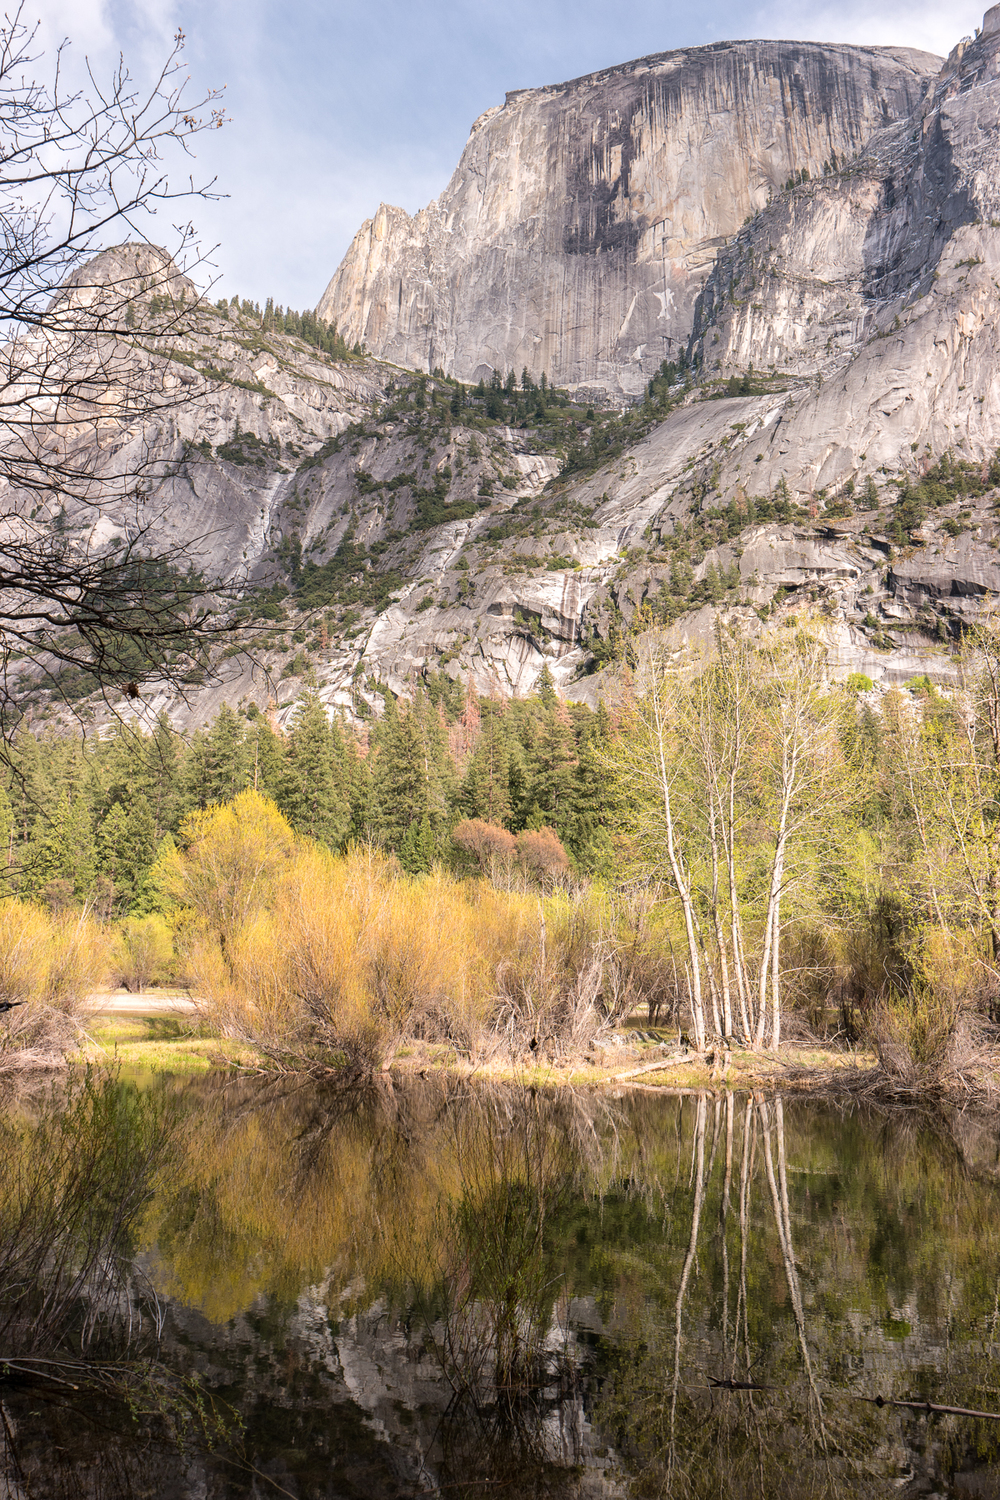 Wasim Muklashy Photography_April 2015_Yosemite_California_Samsung NX500_ SAM_1661_1800px.jpg